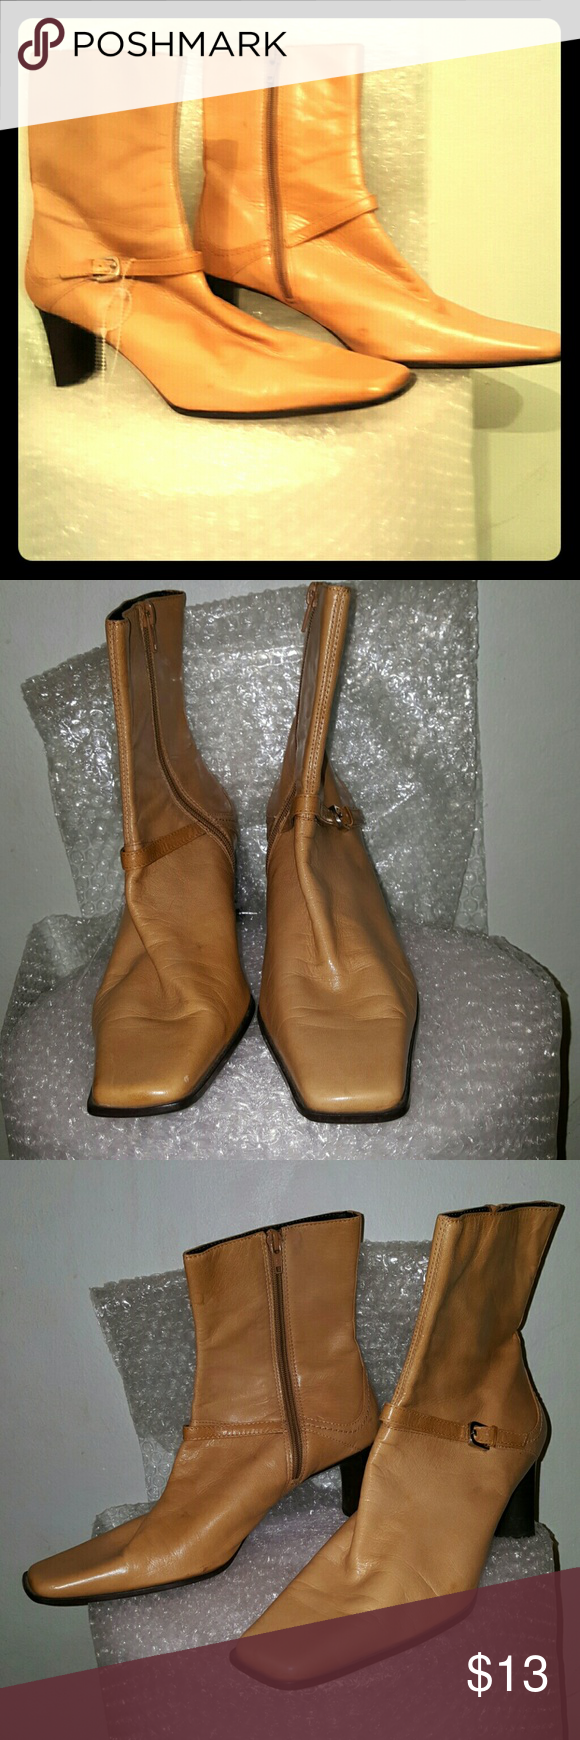 "Nine West Lagosta tan ankle boots 8.5 M 2.5"" brown stacked heel. Rubber sole. Leather lining has some damage& partially flaked off. Some staining to the leather upper. Square toe. Nine West Shoes Ankle Boots & Booties"